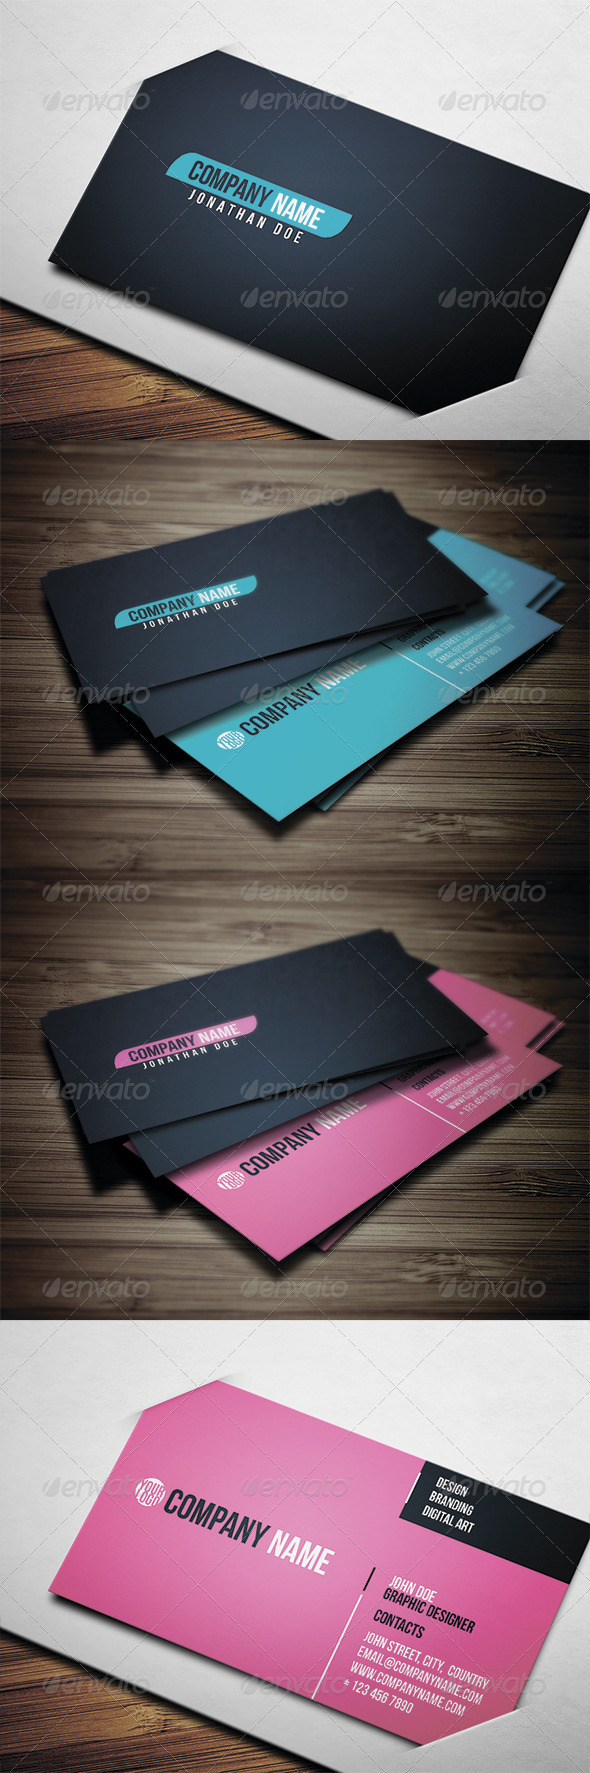 GraphicRiver Corporate Business Card 3564339